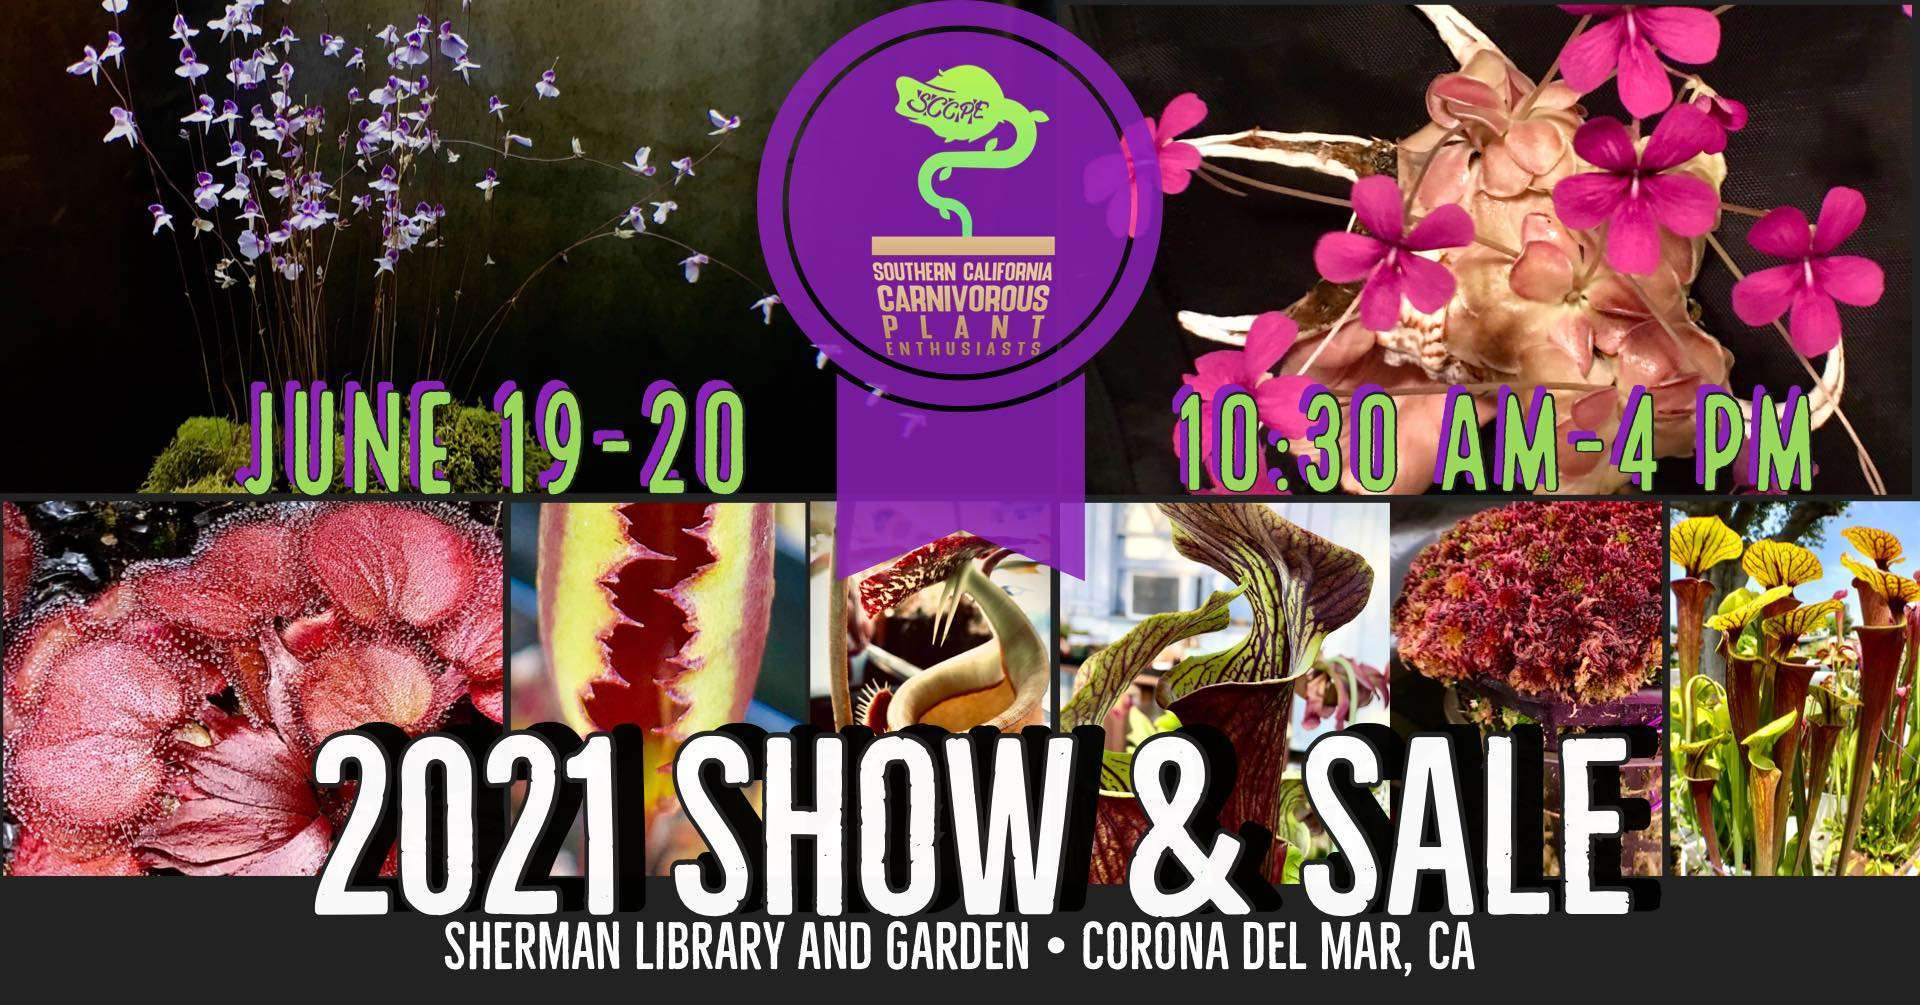 SCCPE Show and sale